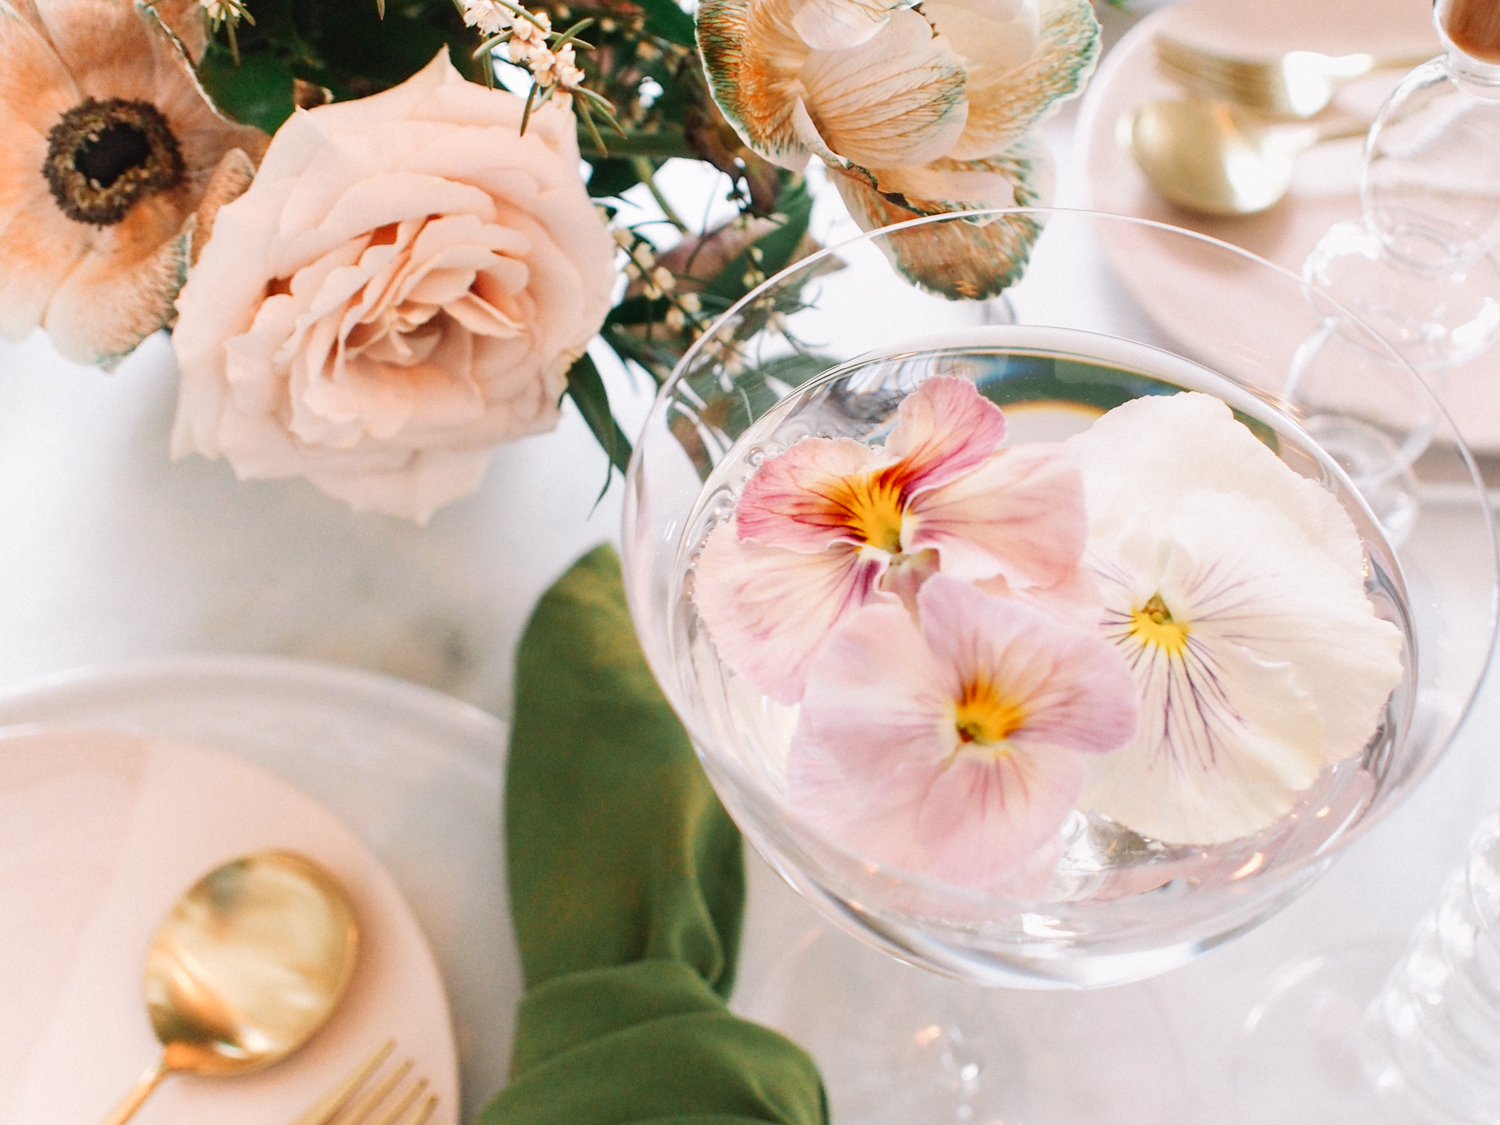 Inspiration for hosting a spring party - Category: EntertainingRead Time: 3 Minutes